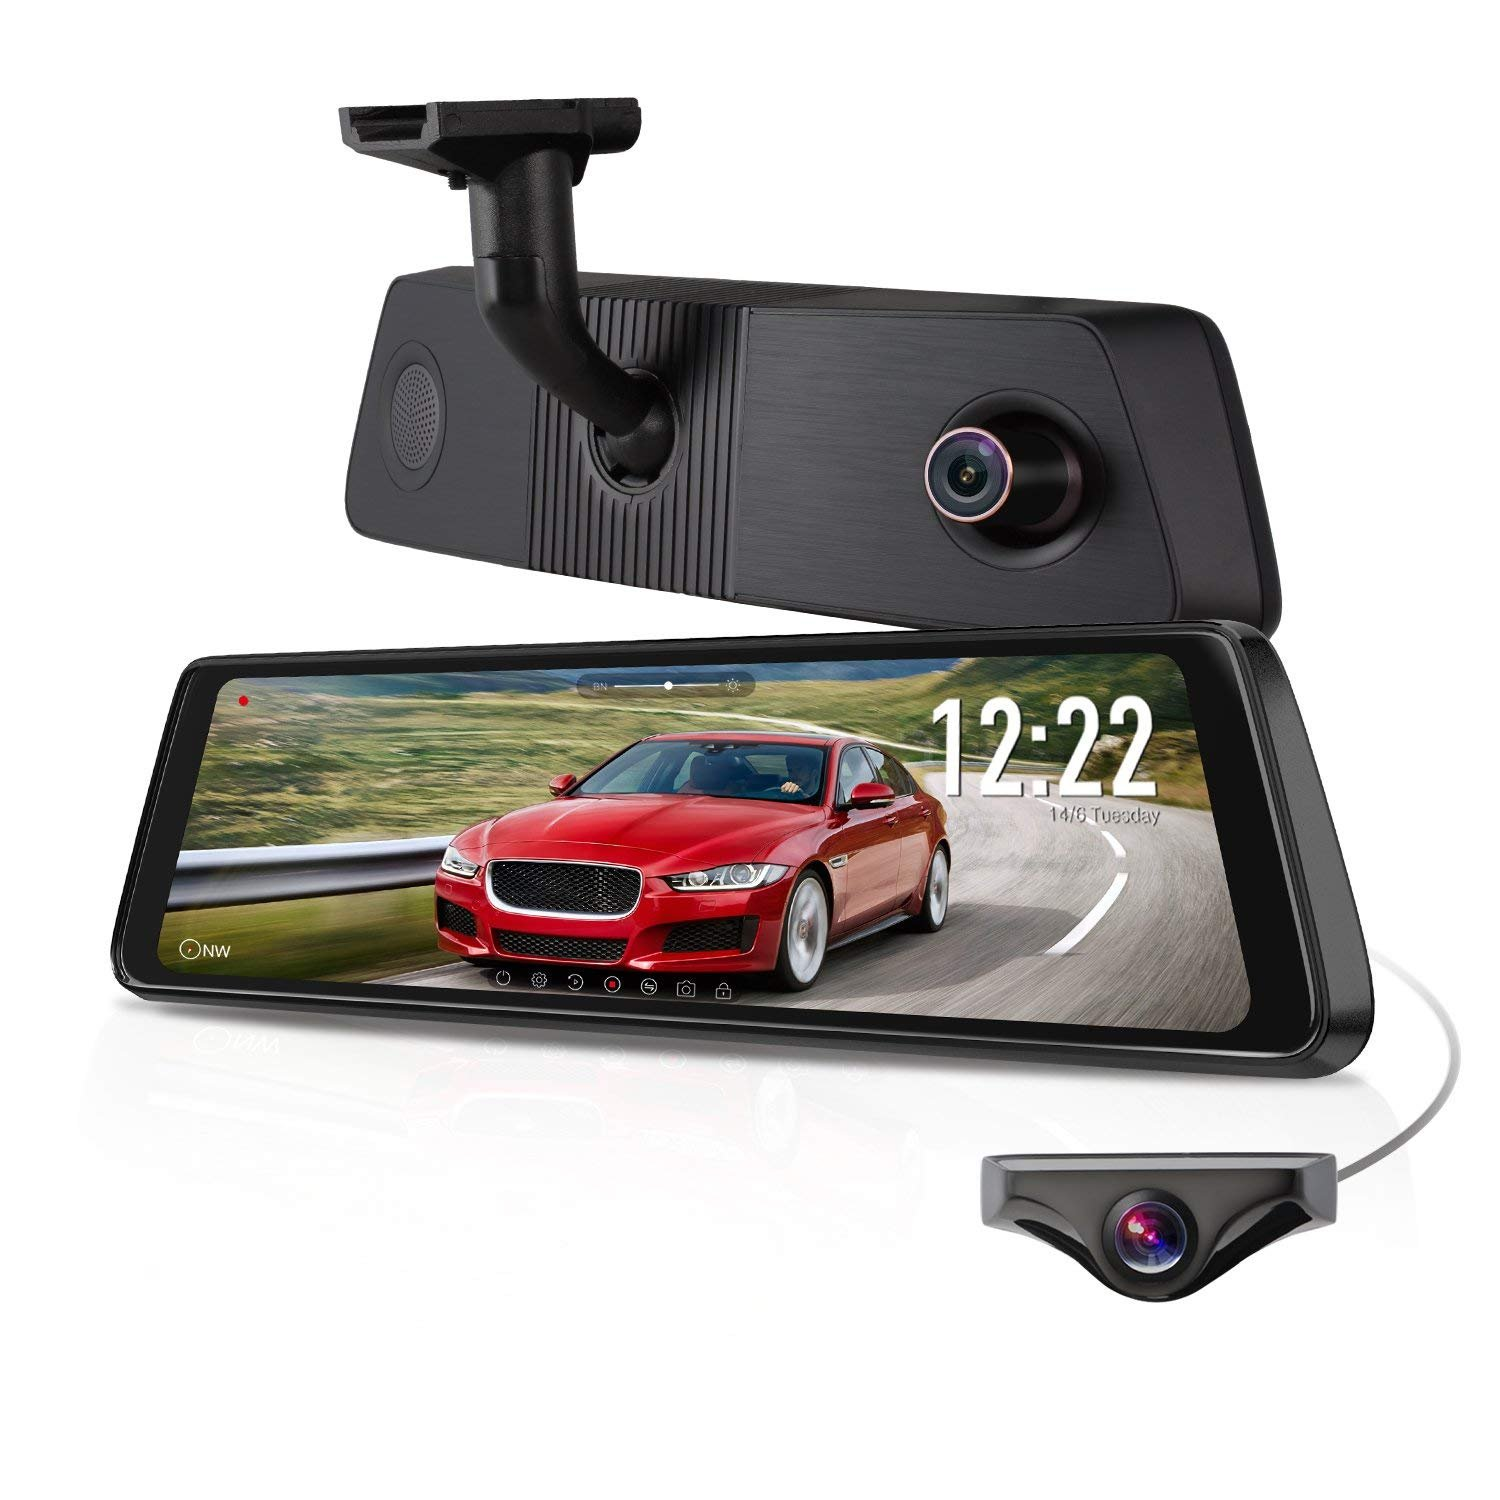 X1pro Rear View Mirror Dash Cam 988 Full Touch Screen Vw Fuse Box Alarm System Dual Lens With 1296p Front And 720p Super Night Vision Stream Media Backup Camera Kit Wdrldws